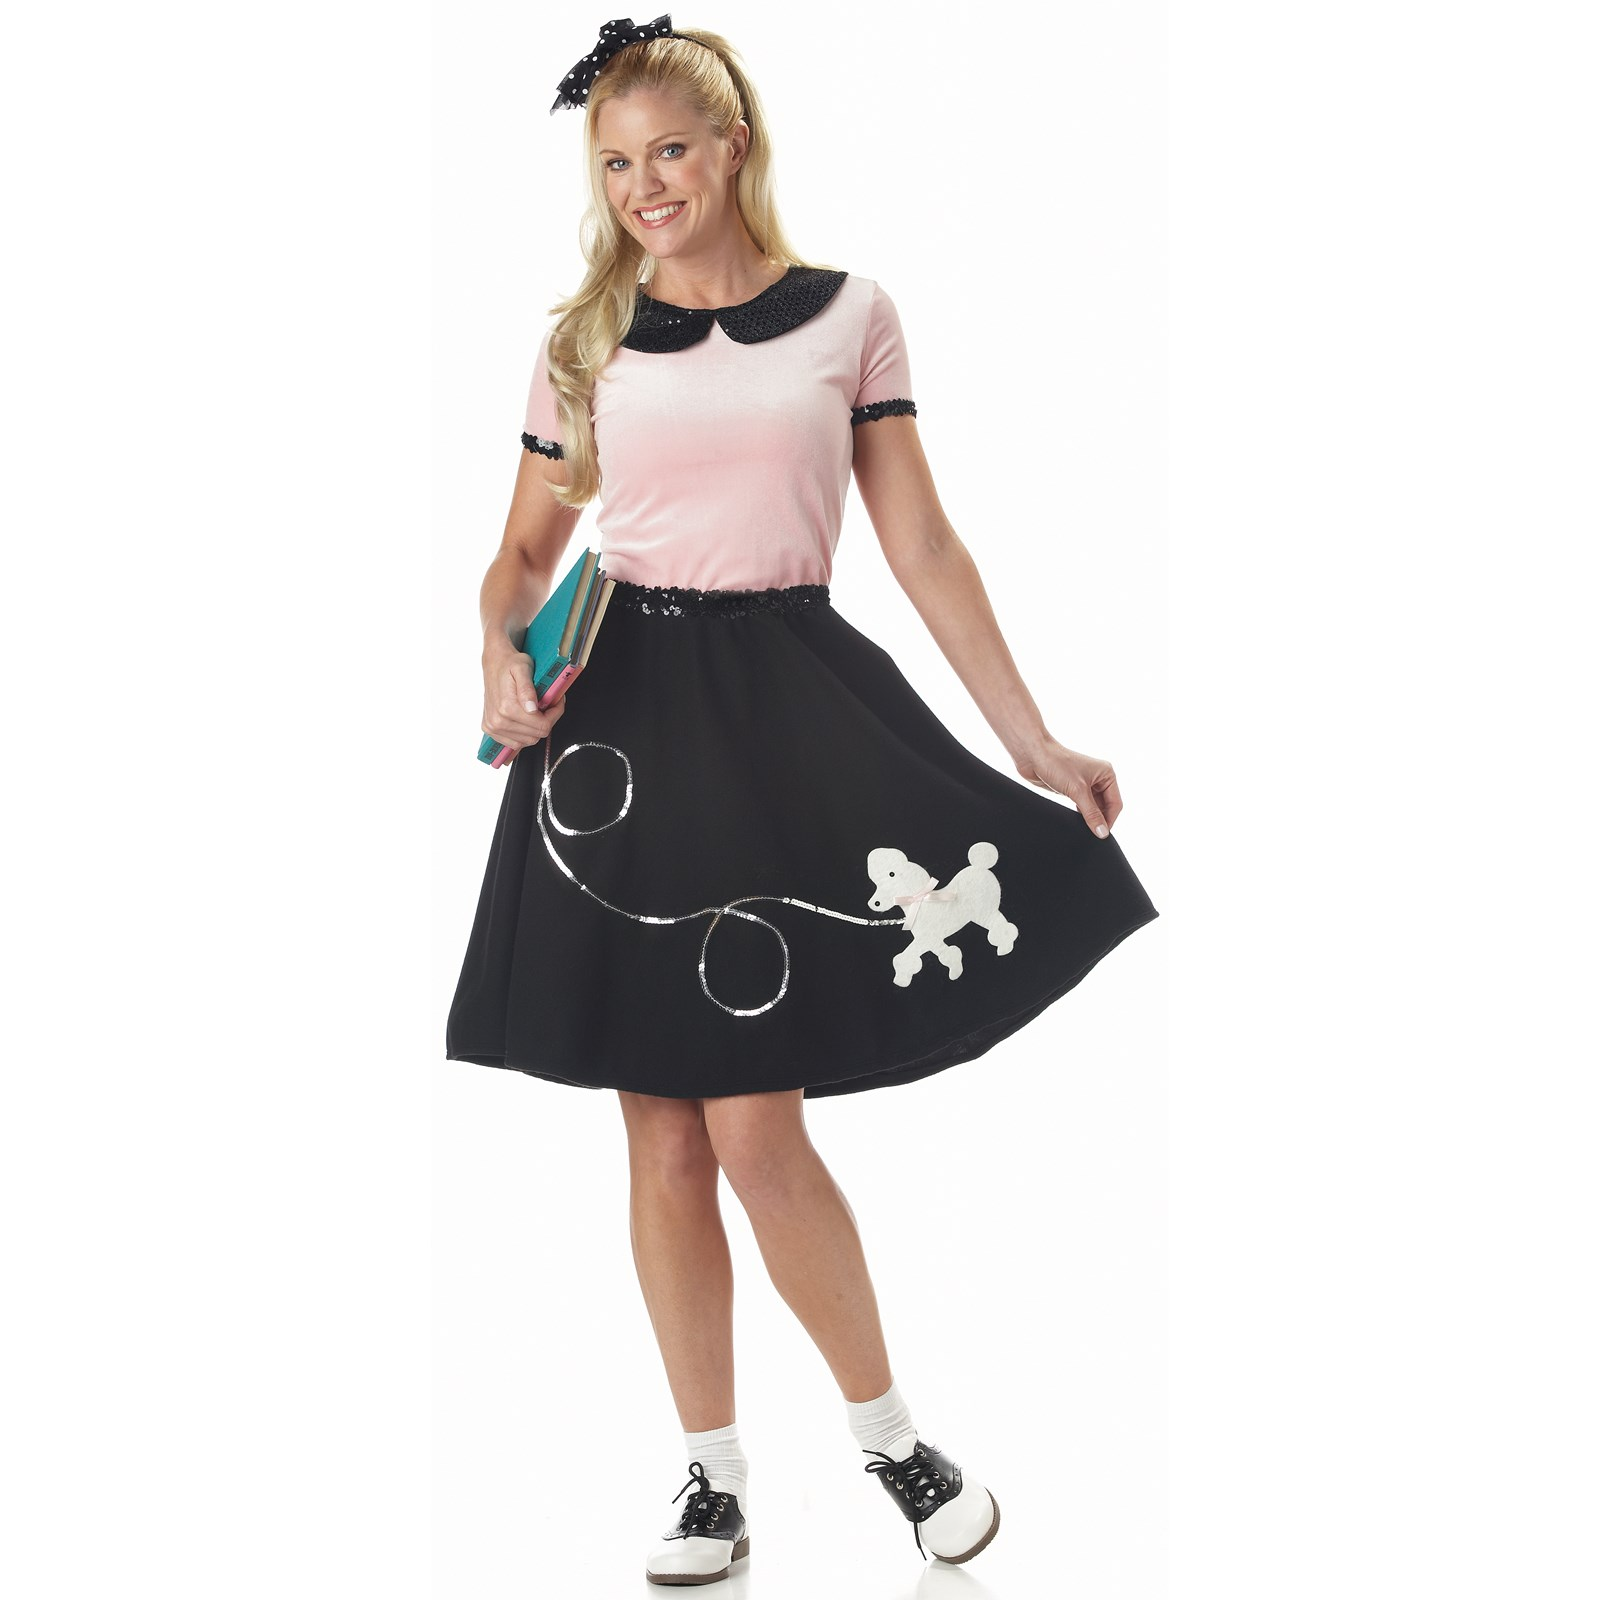 50s Hop With Poodle Skirt Adult Costume